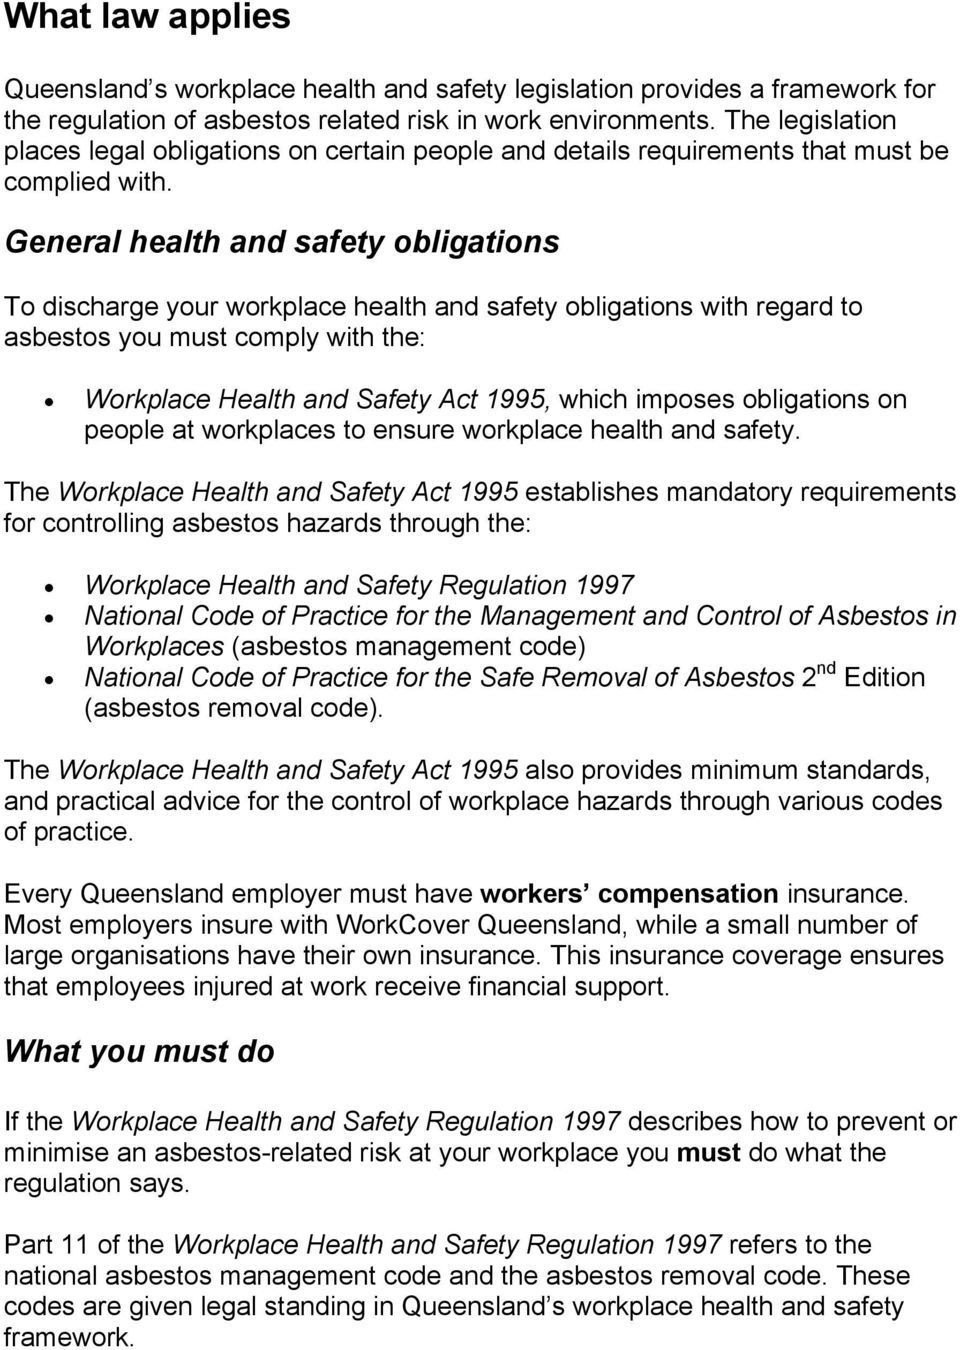 General health and safety obligations To discharge your workplace health and safety obligations with regard to asbestos you must comply with the: Workplace Health and Safety Act 1995, which imposes